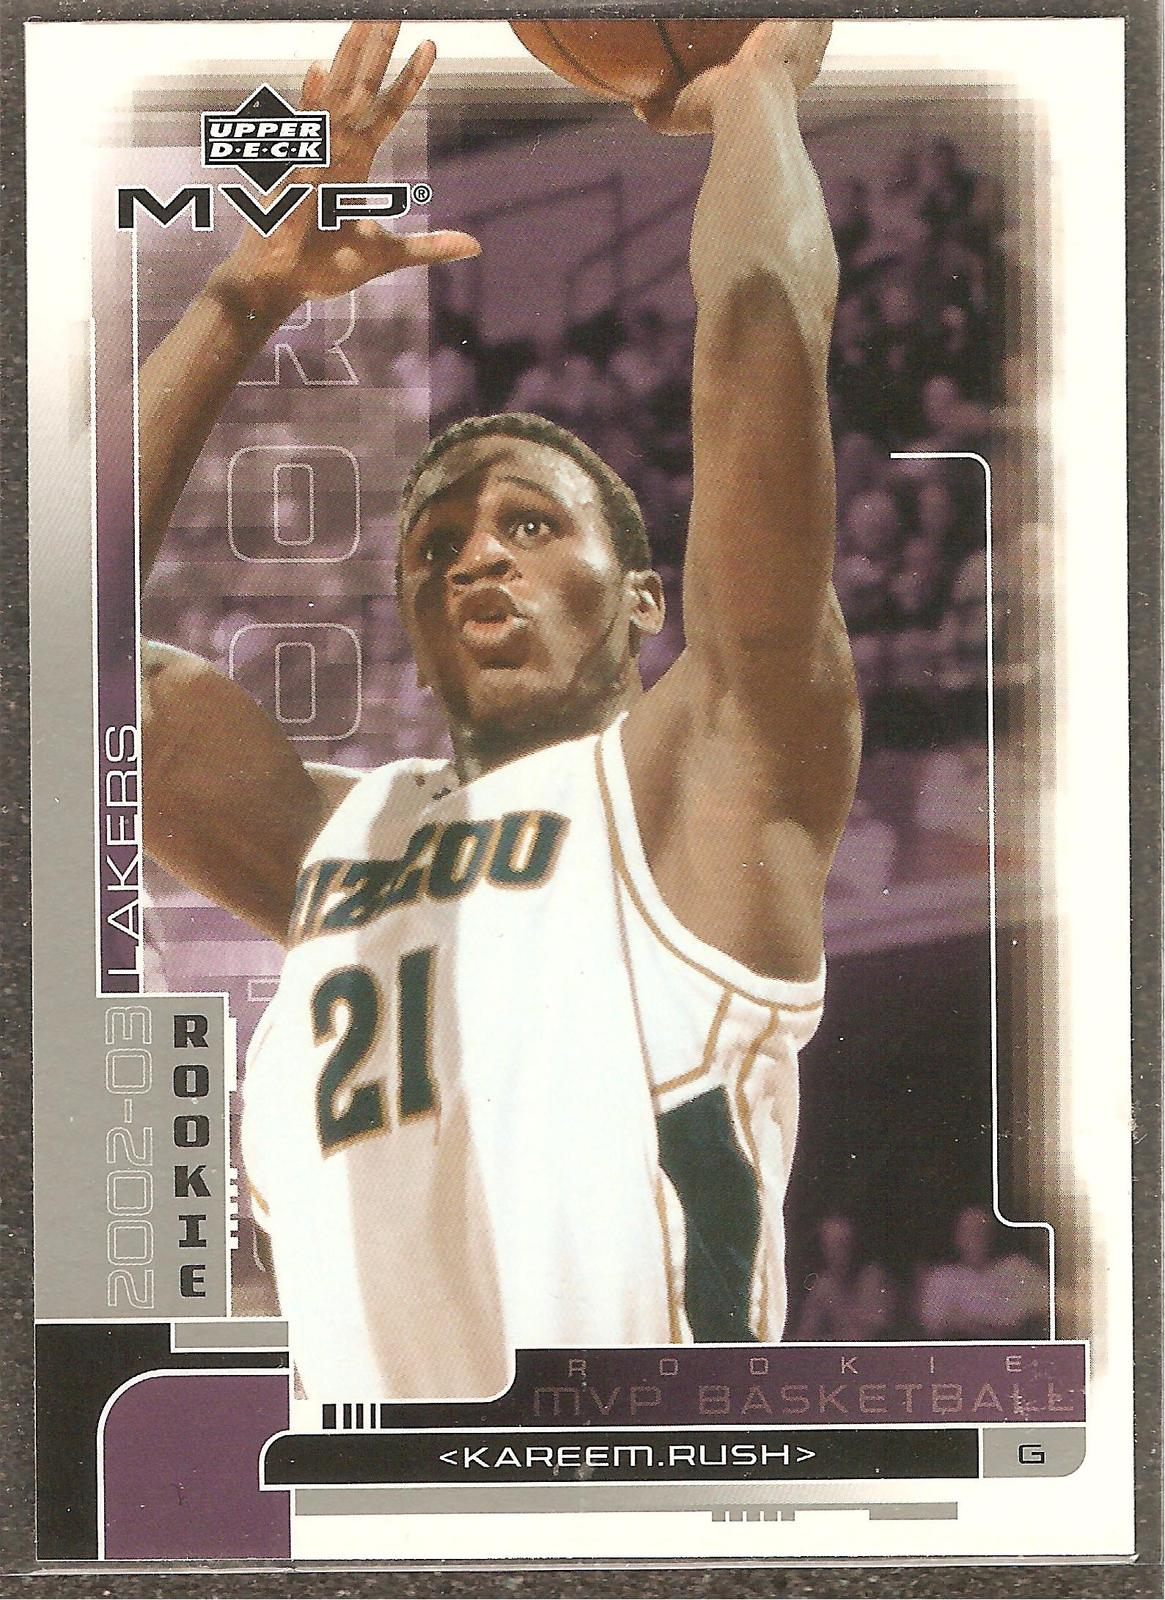 Kareem Rush MVP 02-03 #211 Rookie Card Los Angeles Lakers Charlotte Bobcats